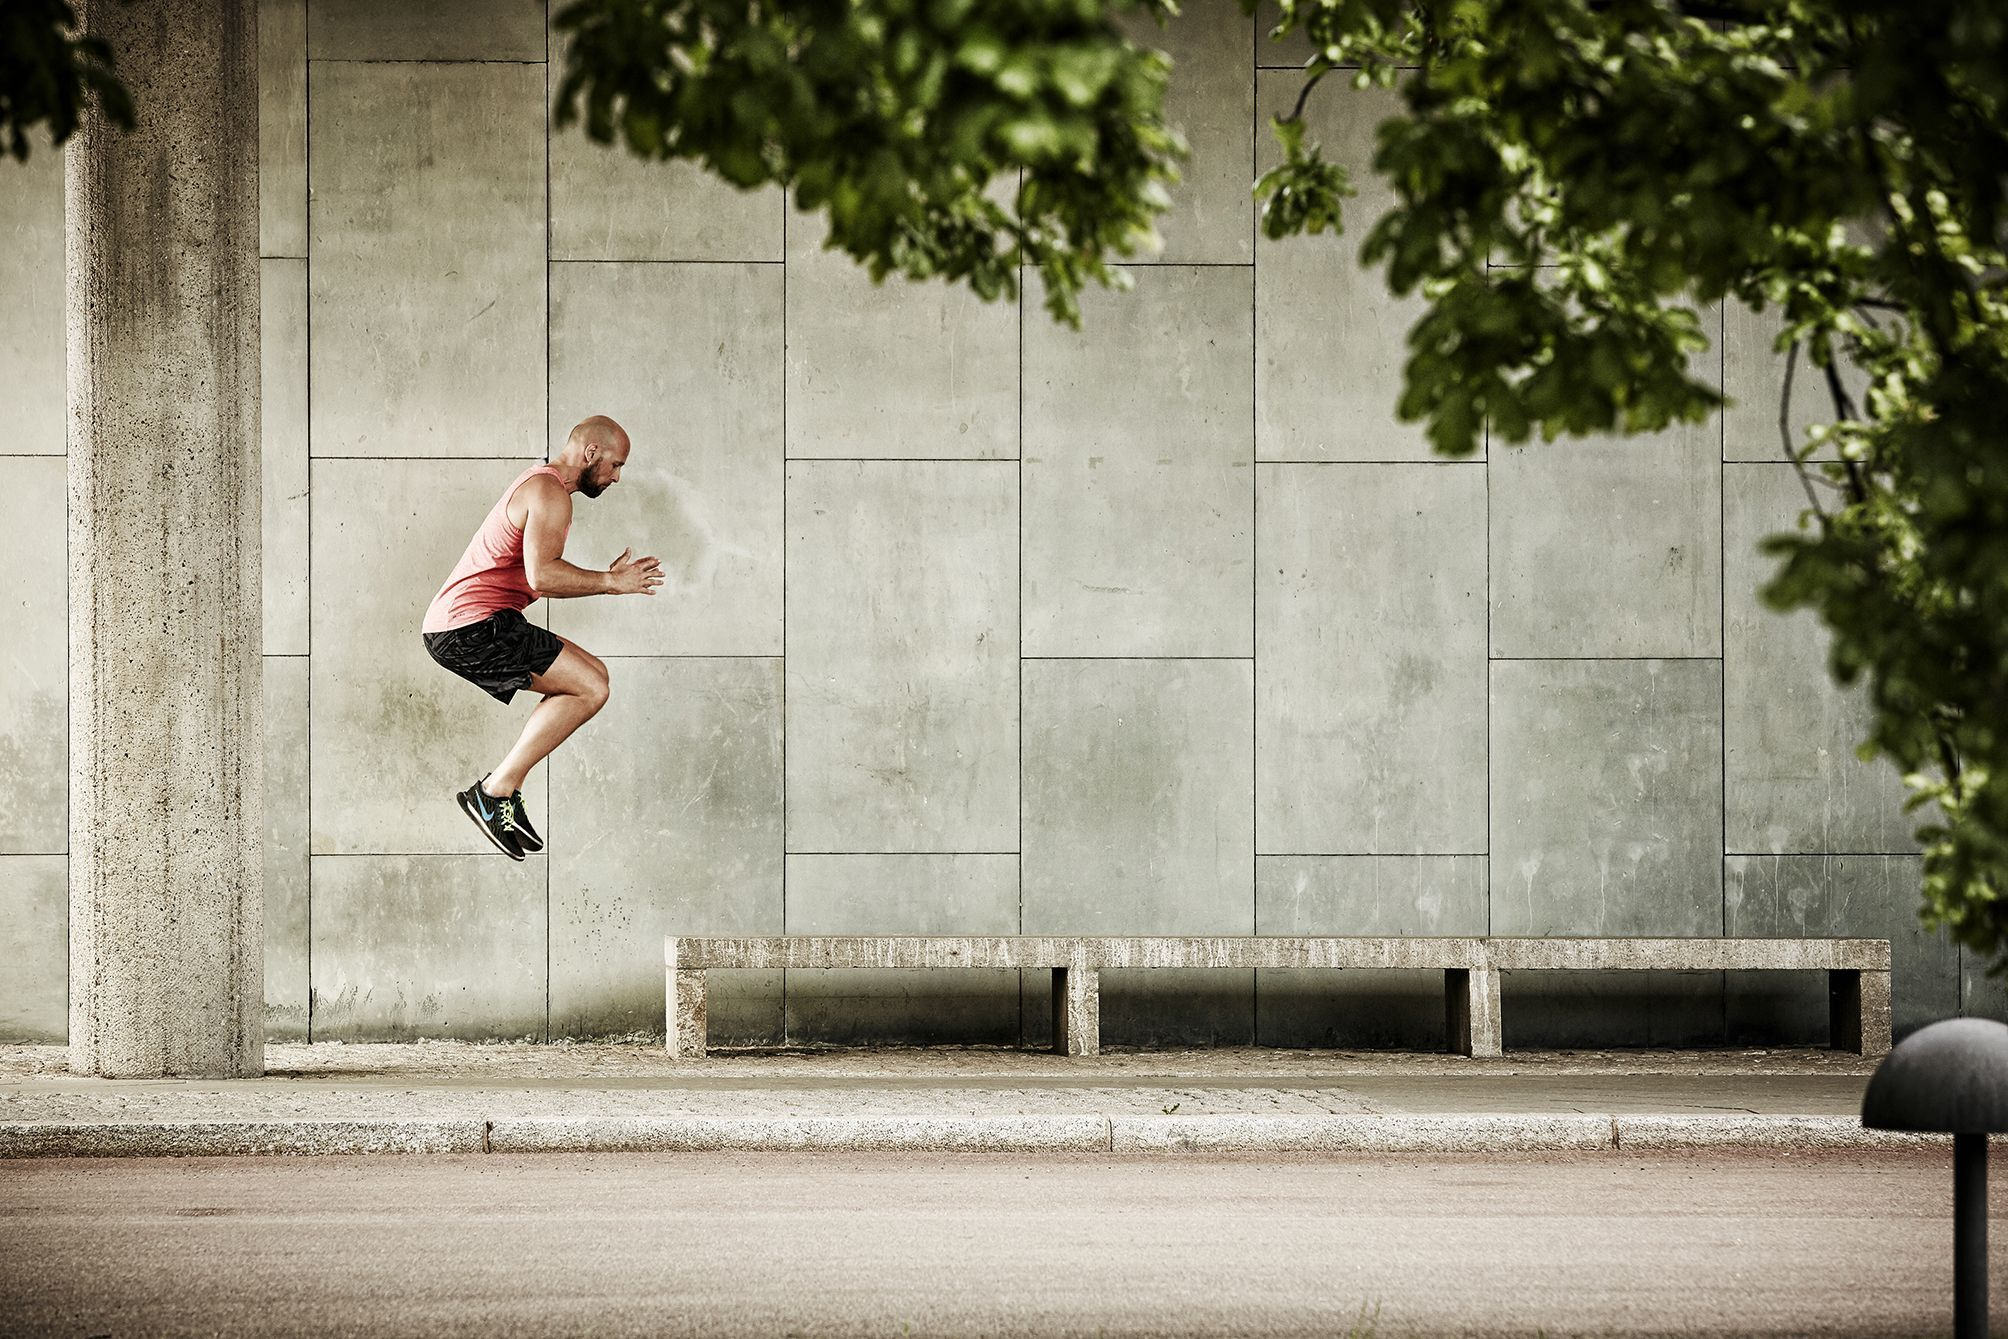 Fitness trainer jumping onto a bench